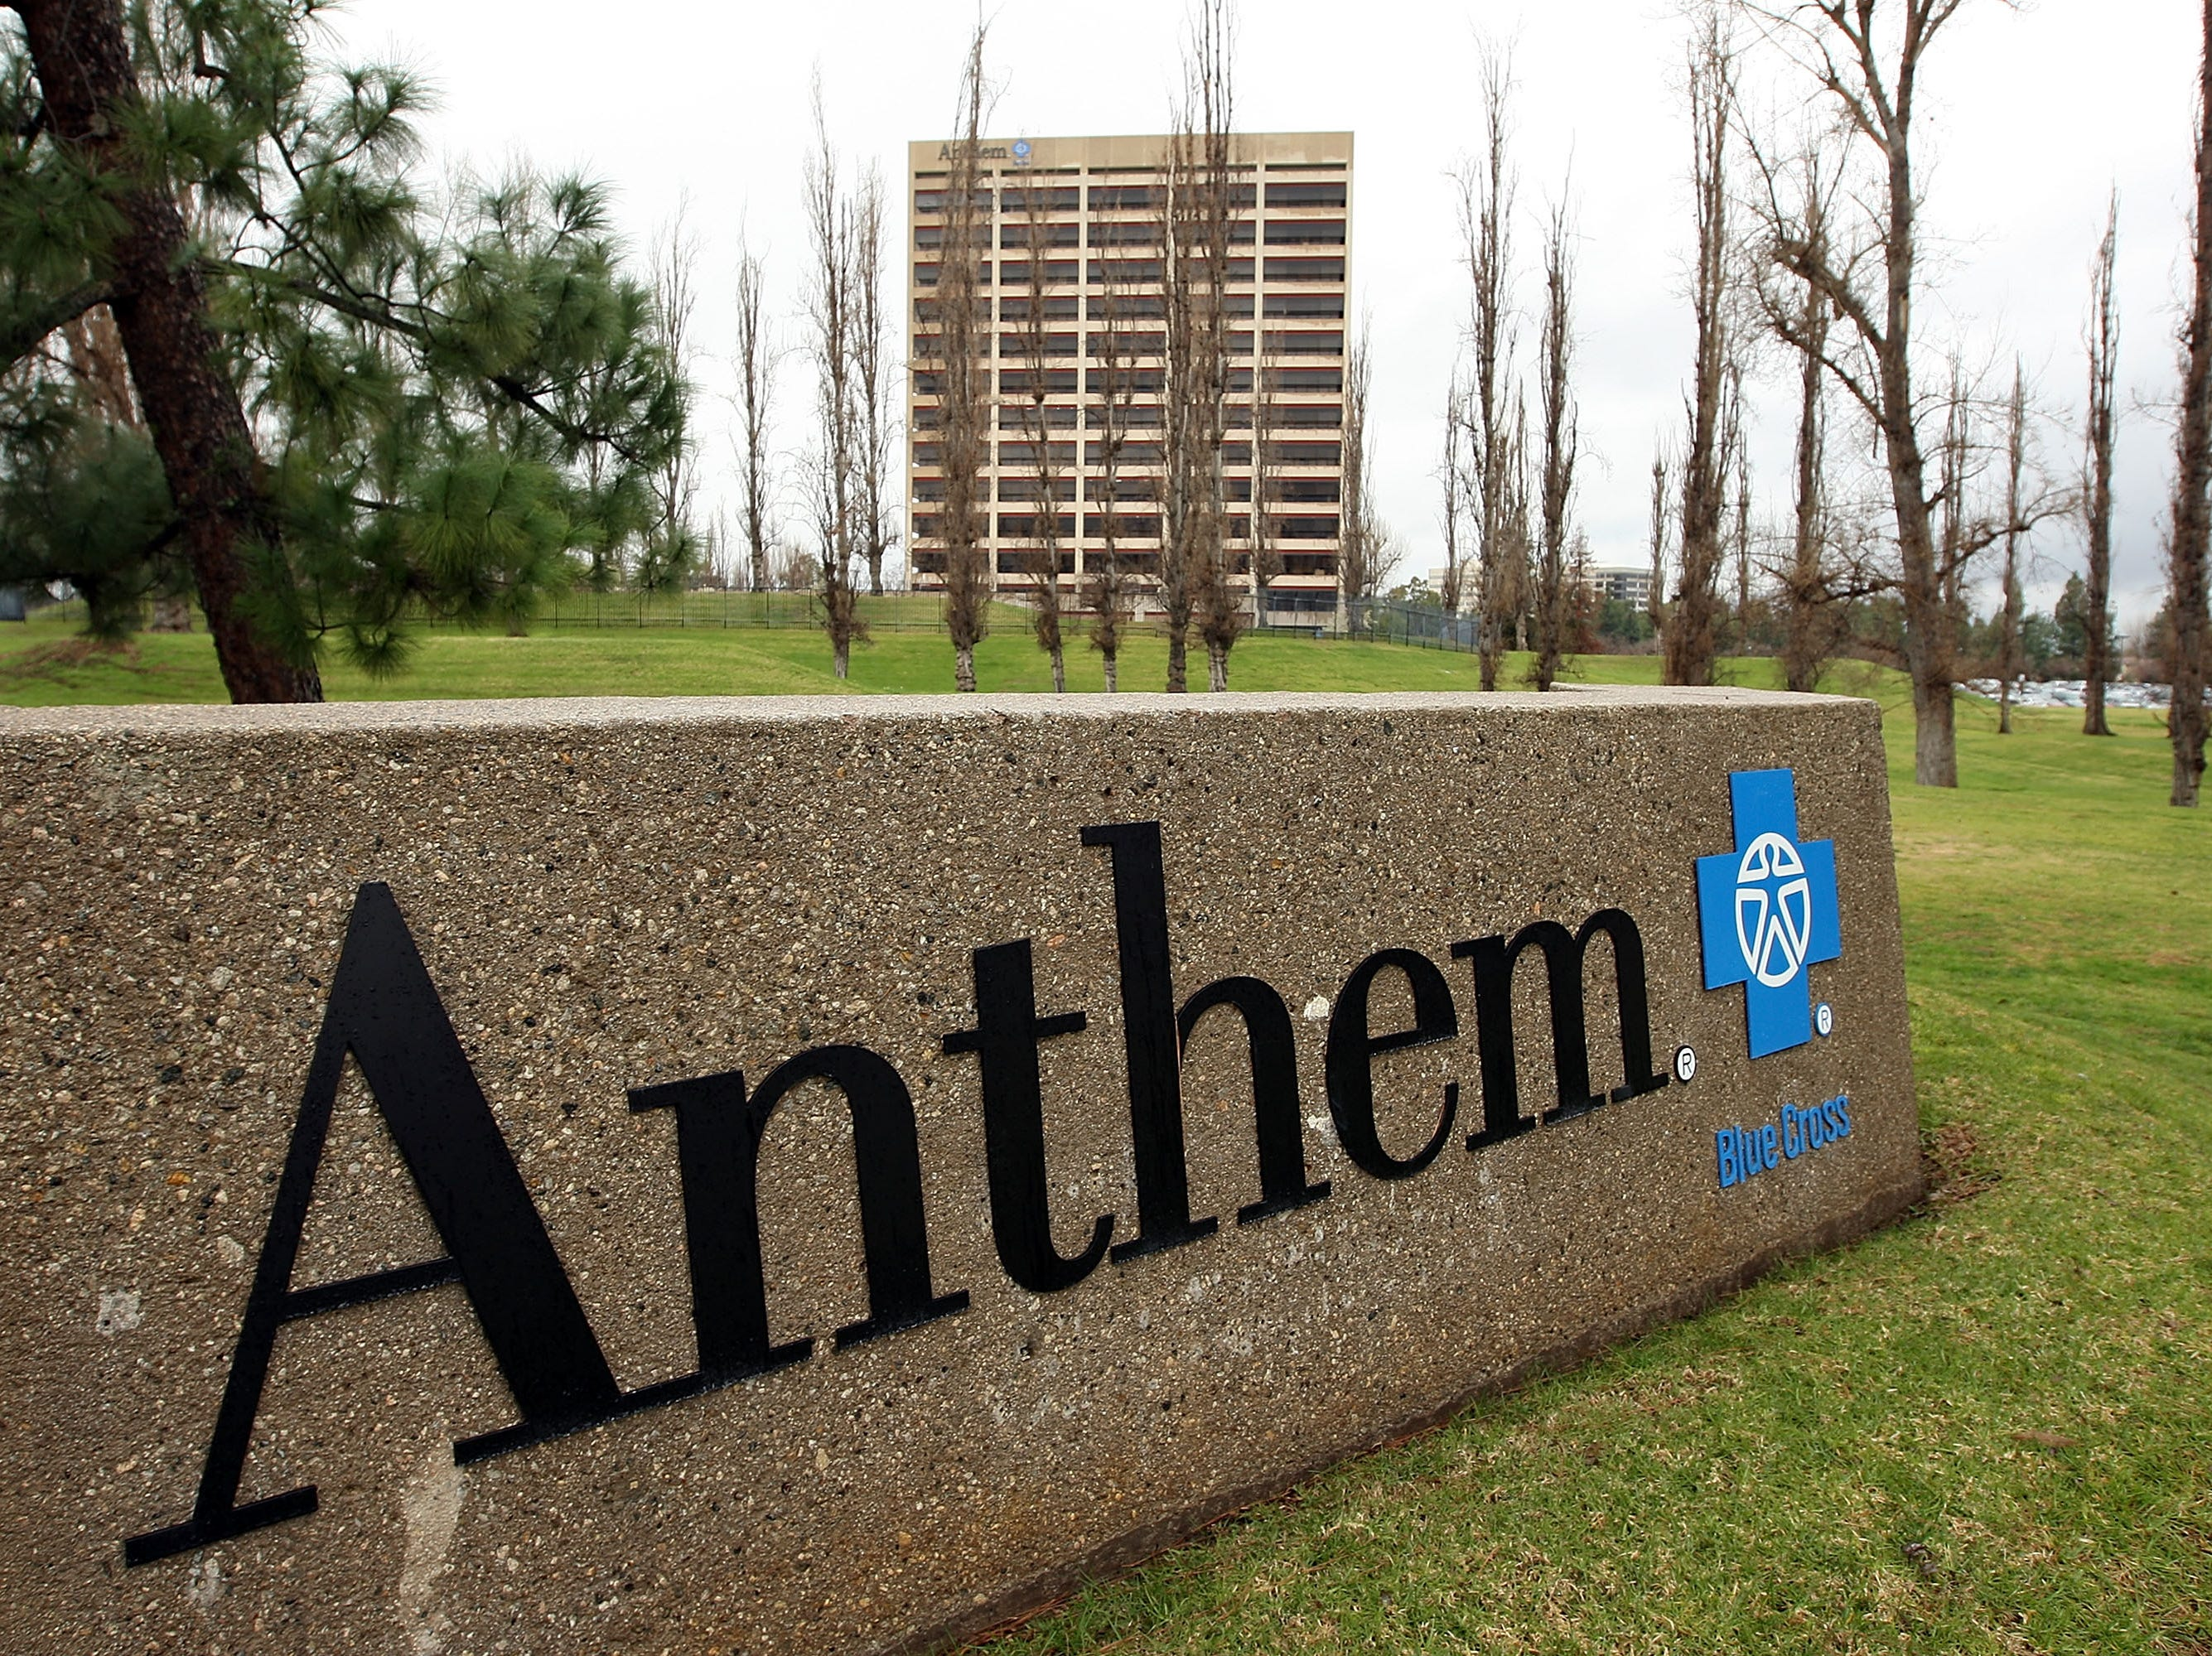 Anthem, hiring 560. The insurer has openings ranging from account managers to reimbursement specialists. More info: antheminc.jobs/arizona/usa/jobs.